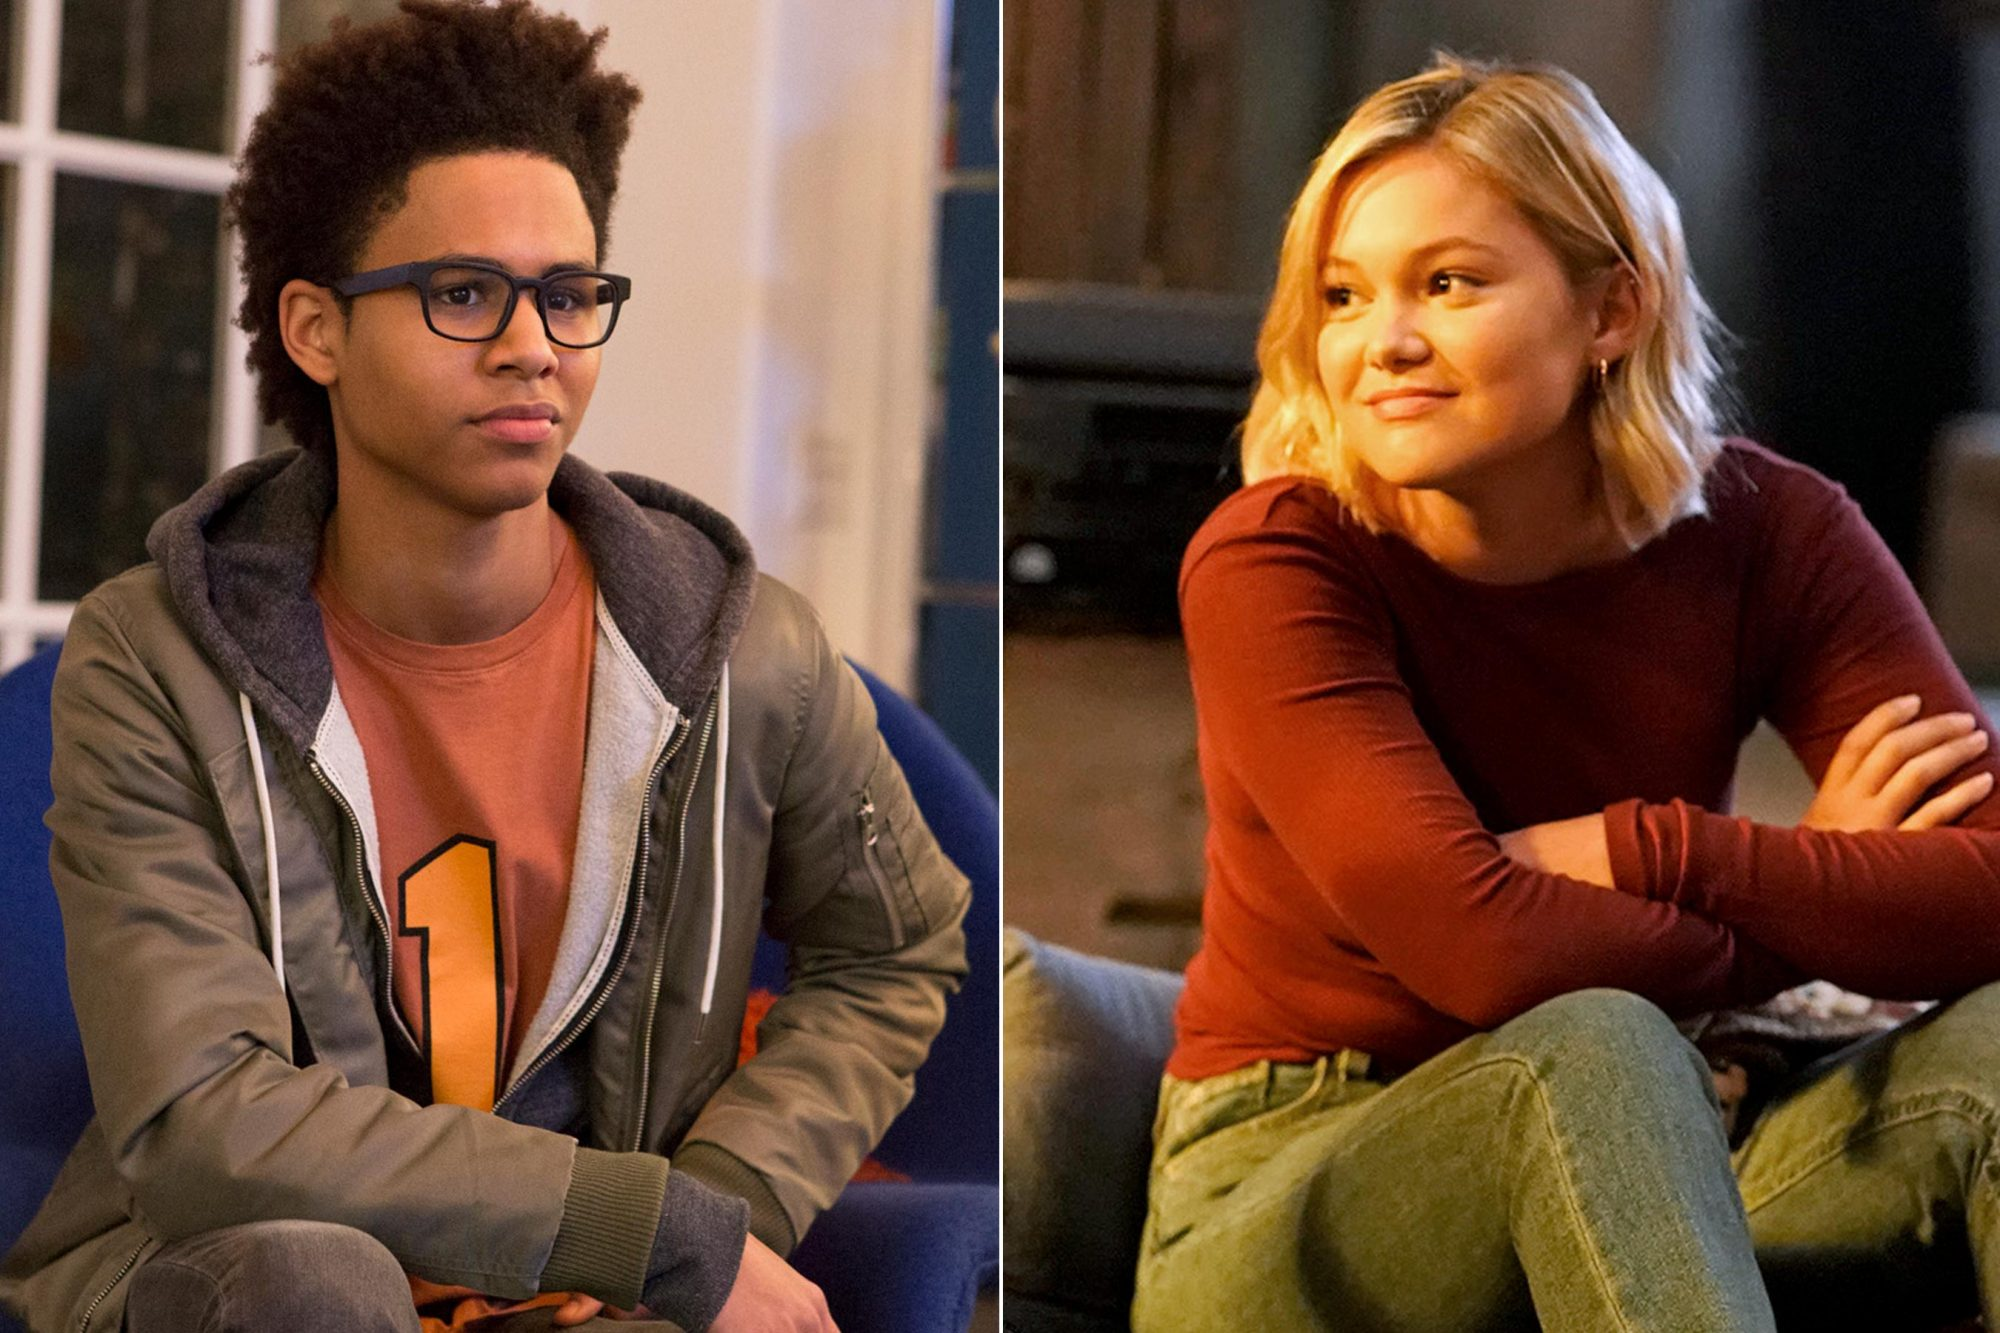 """MARVEL'S RUNAWAYS - """"Pilot"""" - Episode 101 - Every teenager thinks their parents are evil. What if you found out they actually were? Marvel's Runaways is the story of six diverse teenagers who can barely stand each other but who must unite against a common foe ñ their parents. The 10-episode series premieres Tuesday, November 21st. The series stars Rhenzy Feliz, Lyrica Okano, Virginia Gardner, Ariela Barer, Gregg Sulkin, Allegra Acosta, Annie Wersching, Ryan Sands, Angel Parker, Ever Carradine, James Marsters, Kevin Weisman, Brigid Brannah, James Yaegashi, Brittany Ishibashi, and Kip Pardue.Alex Wilder (Rhenzy Feliz), shown. (Photo by: Paul Sarkis/Hulu) MARVEL'S CLOAK & DAGGER - """"Restless Energy"""" - Now living very different lives, Tyrone and Tandy try to stay under the wire while still honing their powers. After coming to terms with their destiny, the two now find it difficult to just stand by and do nothing while bad things continue to happen throughout the city. Meanwhile, Brigid is struggling from her recovery. This episode of """"Marvel's Cloak & Dagger"""" airs Thursday, April 4 (8:00 – 9:00 p.m. ET/PT) on Freeform. (Freeform/Alfonso Bresciani) OLIVIA HOLT"""